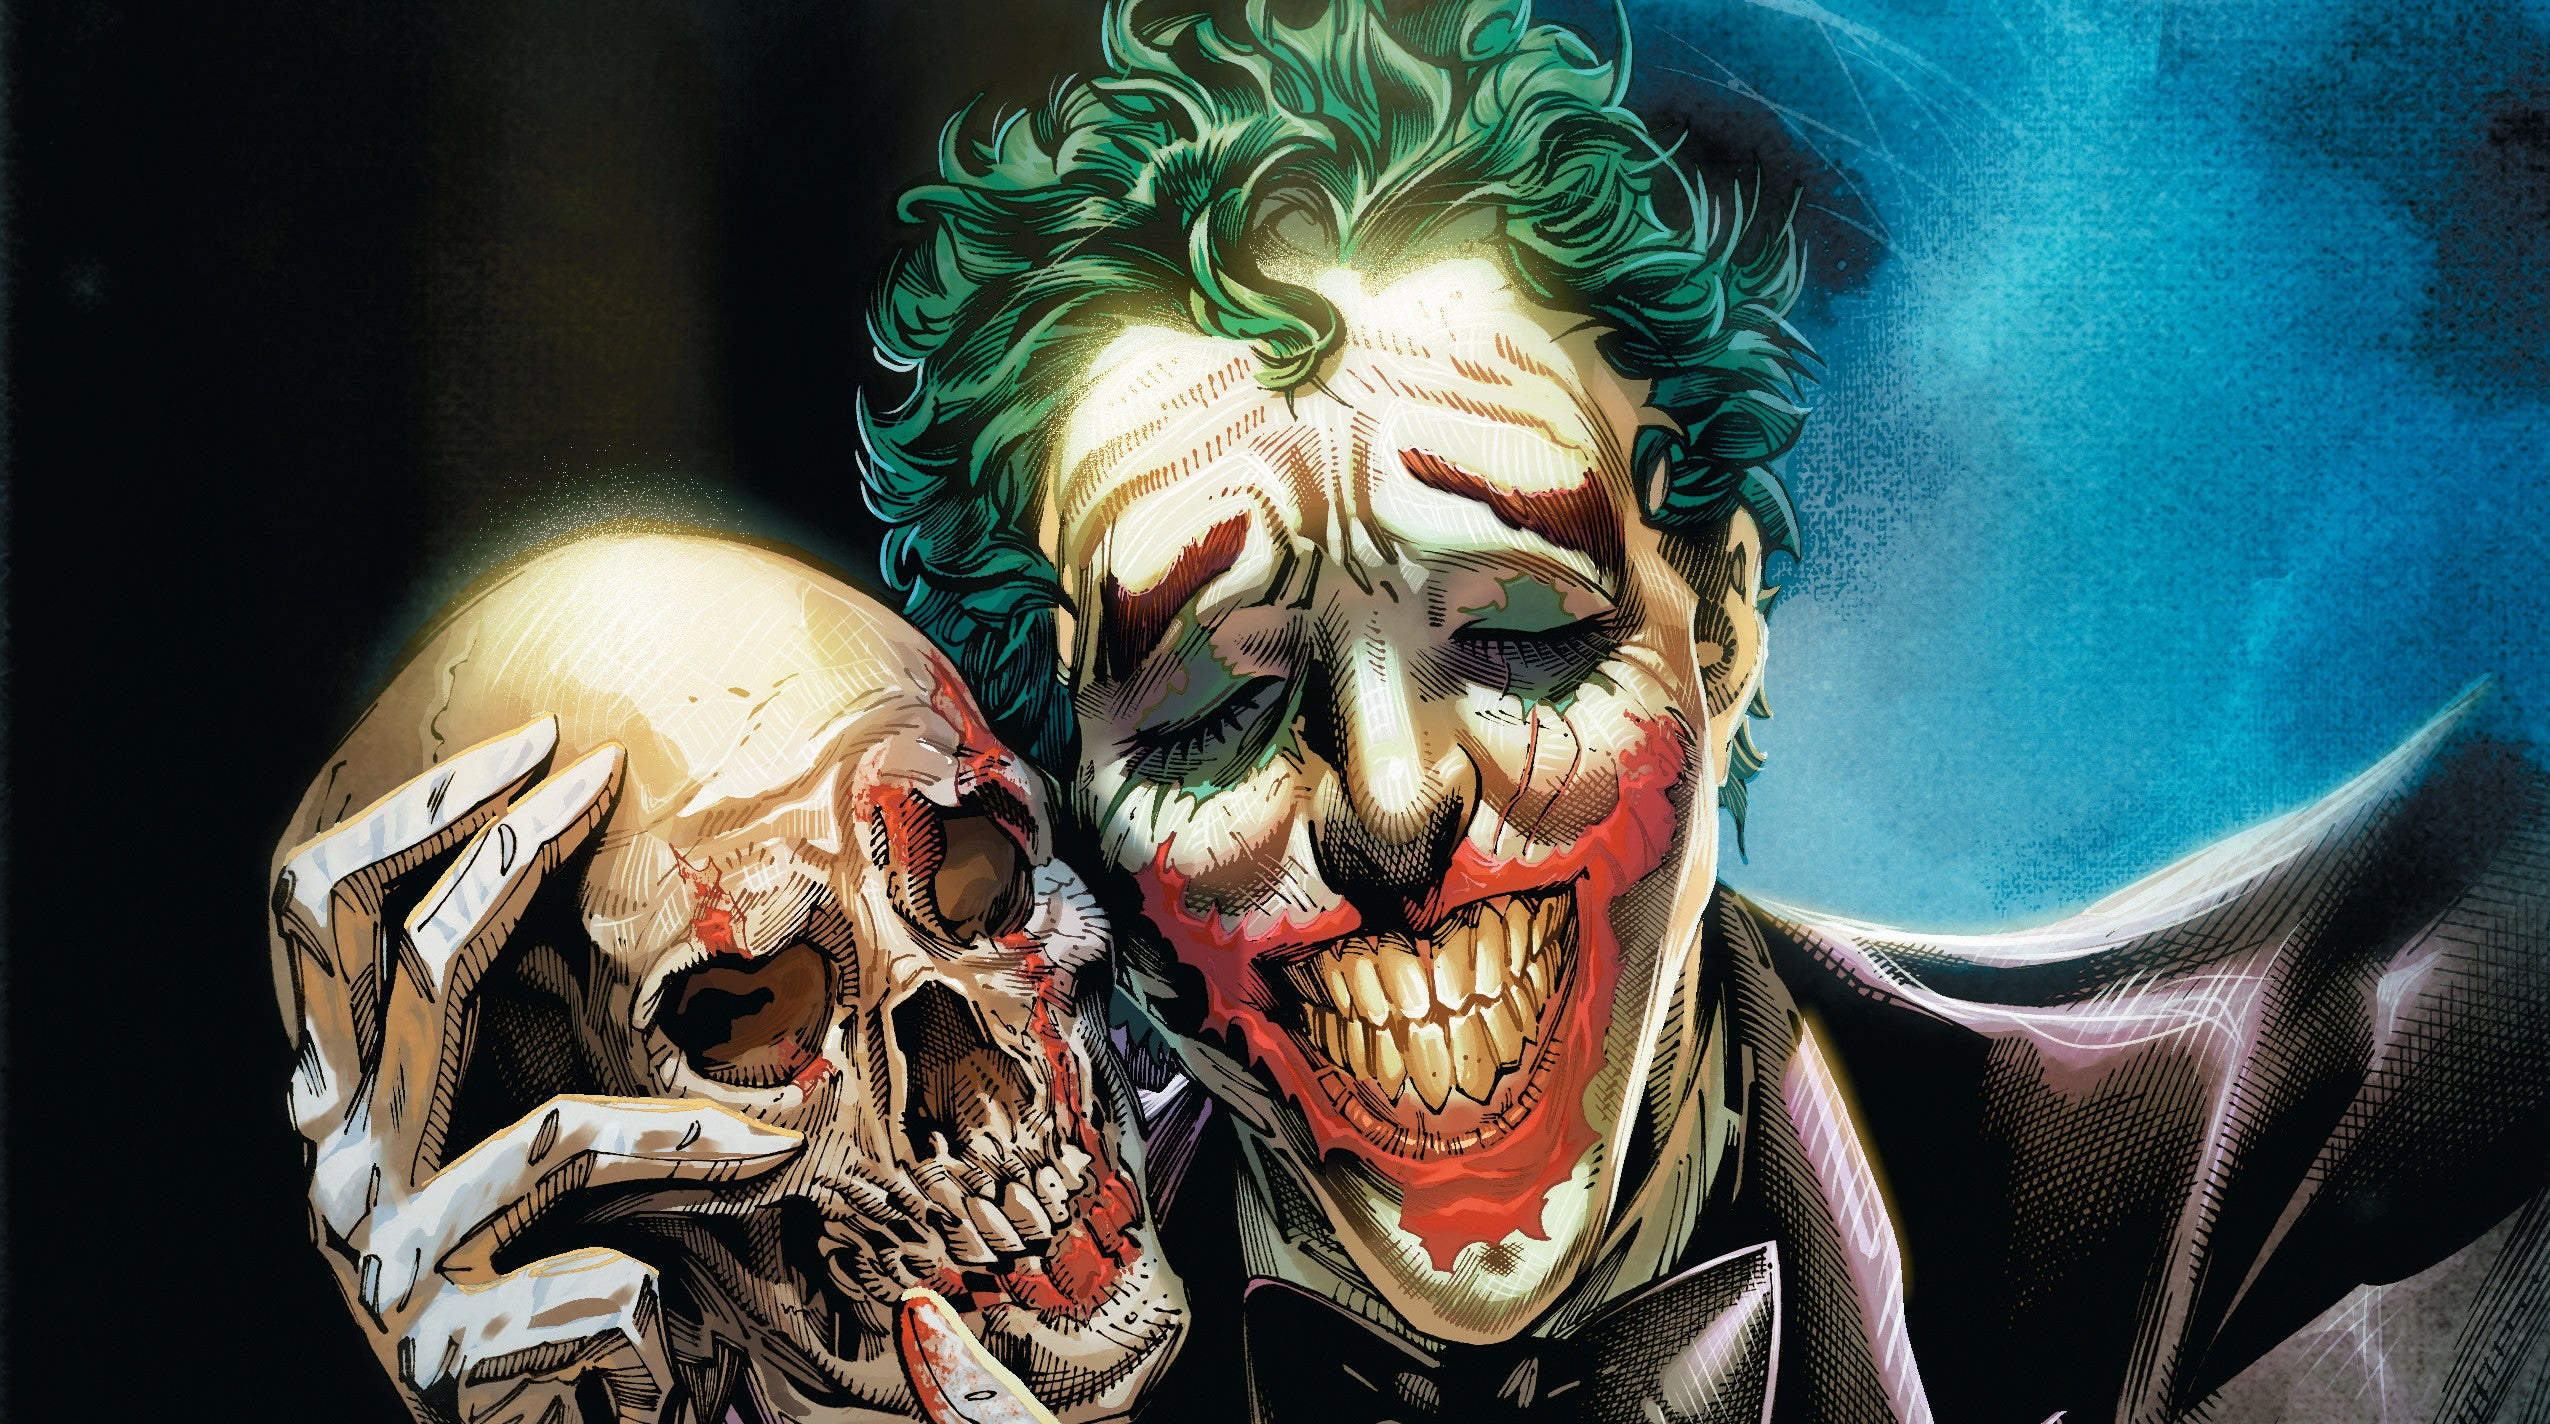 John Carpenter And Anthony Burch Are Co-Writing A New Joker Comic